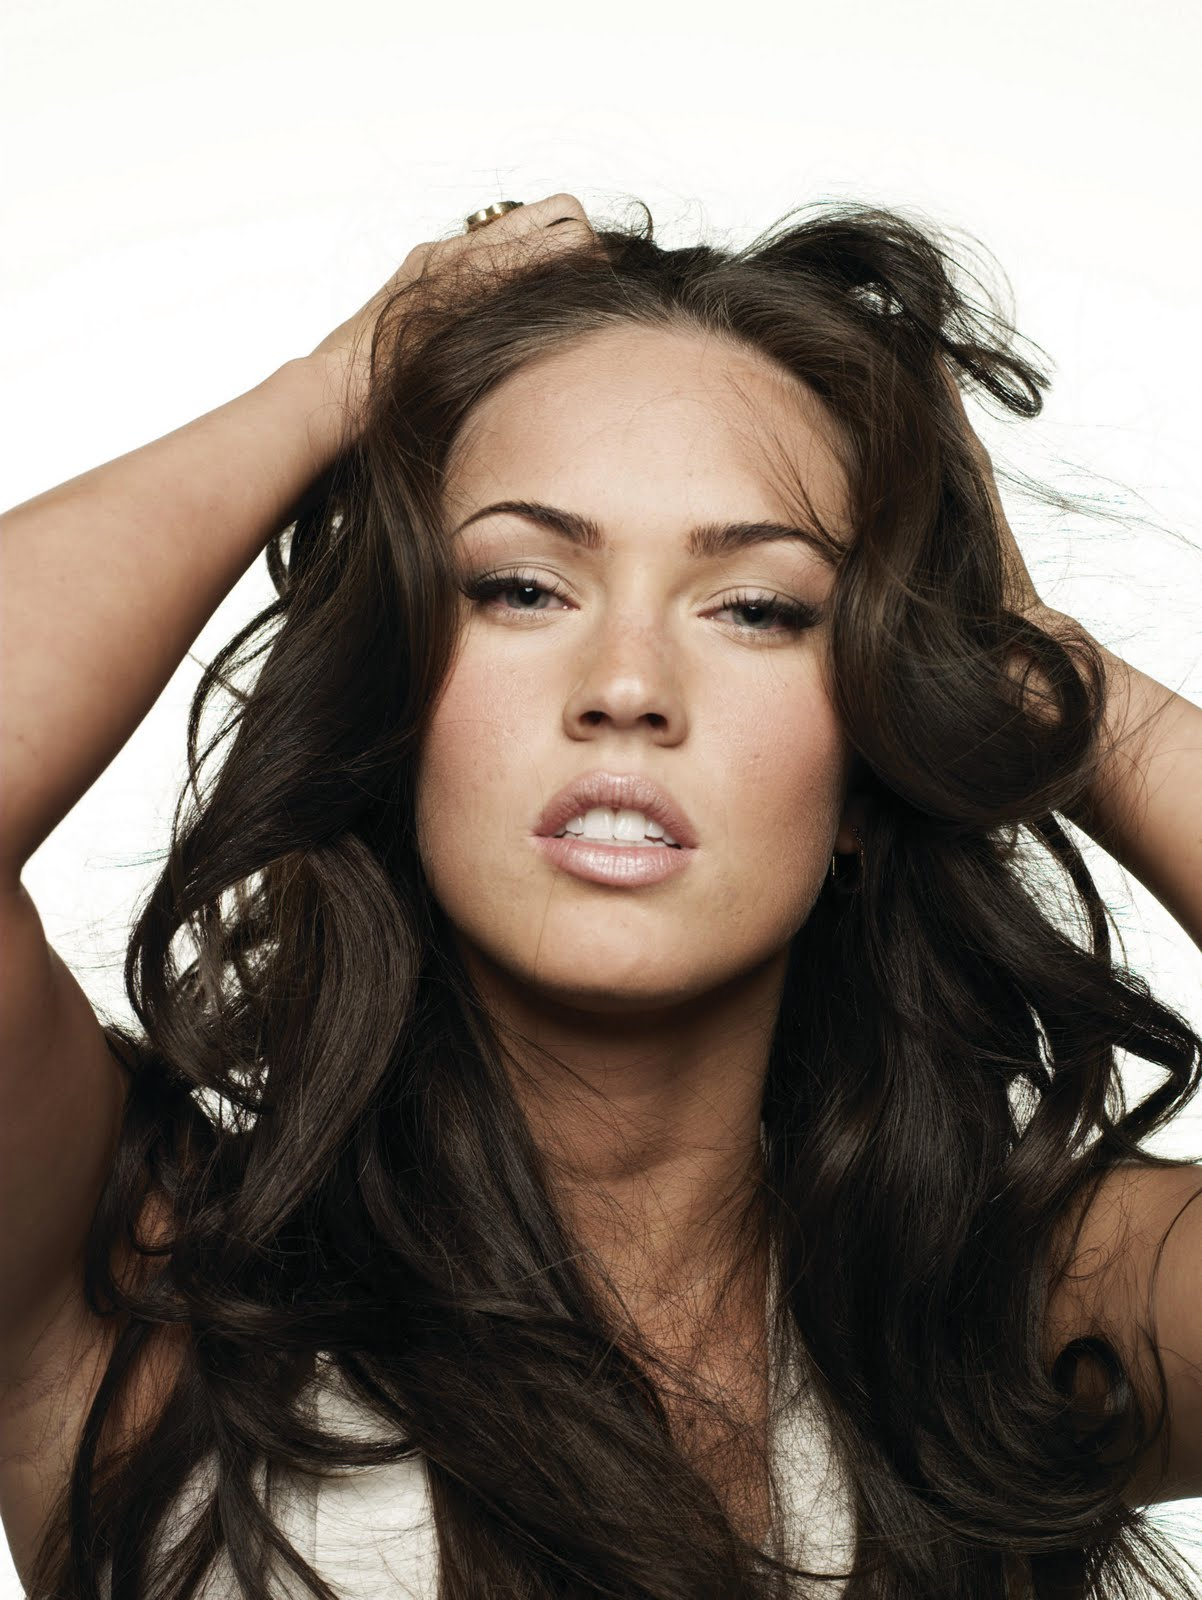 Warm Nude Pictures Of Megan Fox Pictures